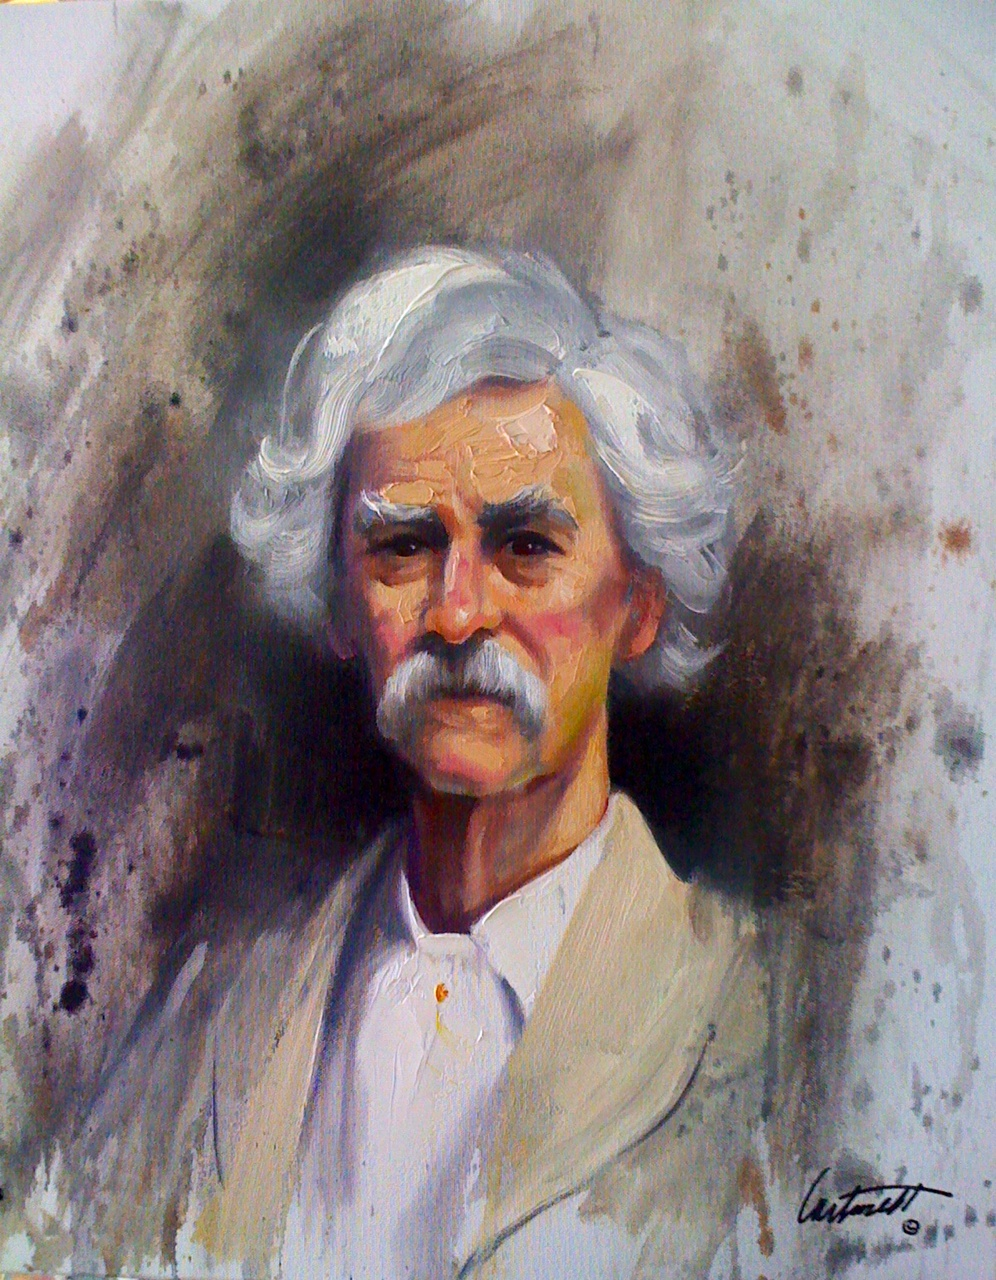 Mark Twain Oil Painting on Canvas